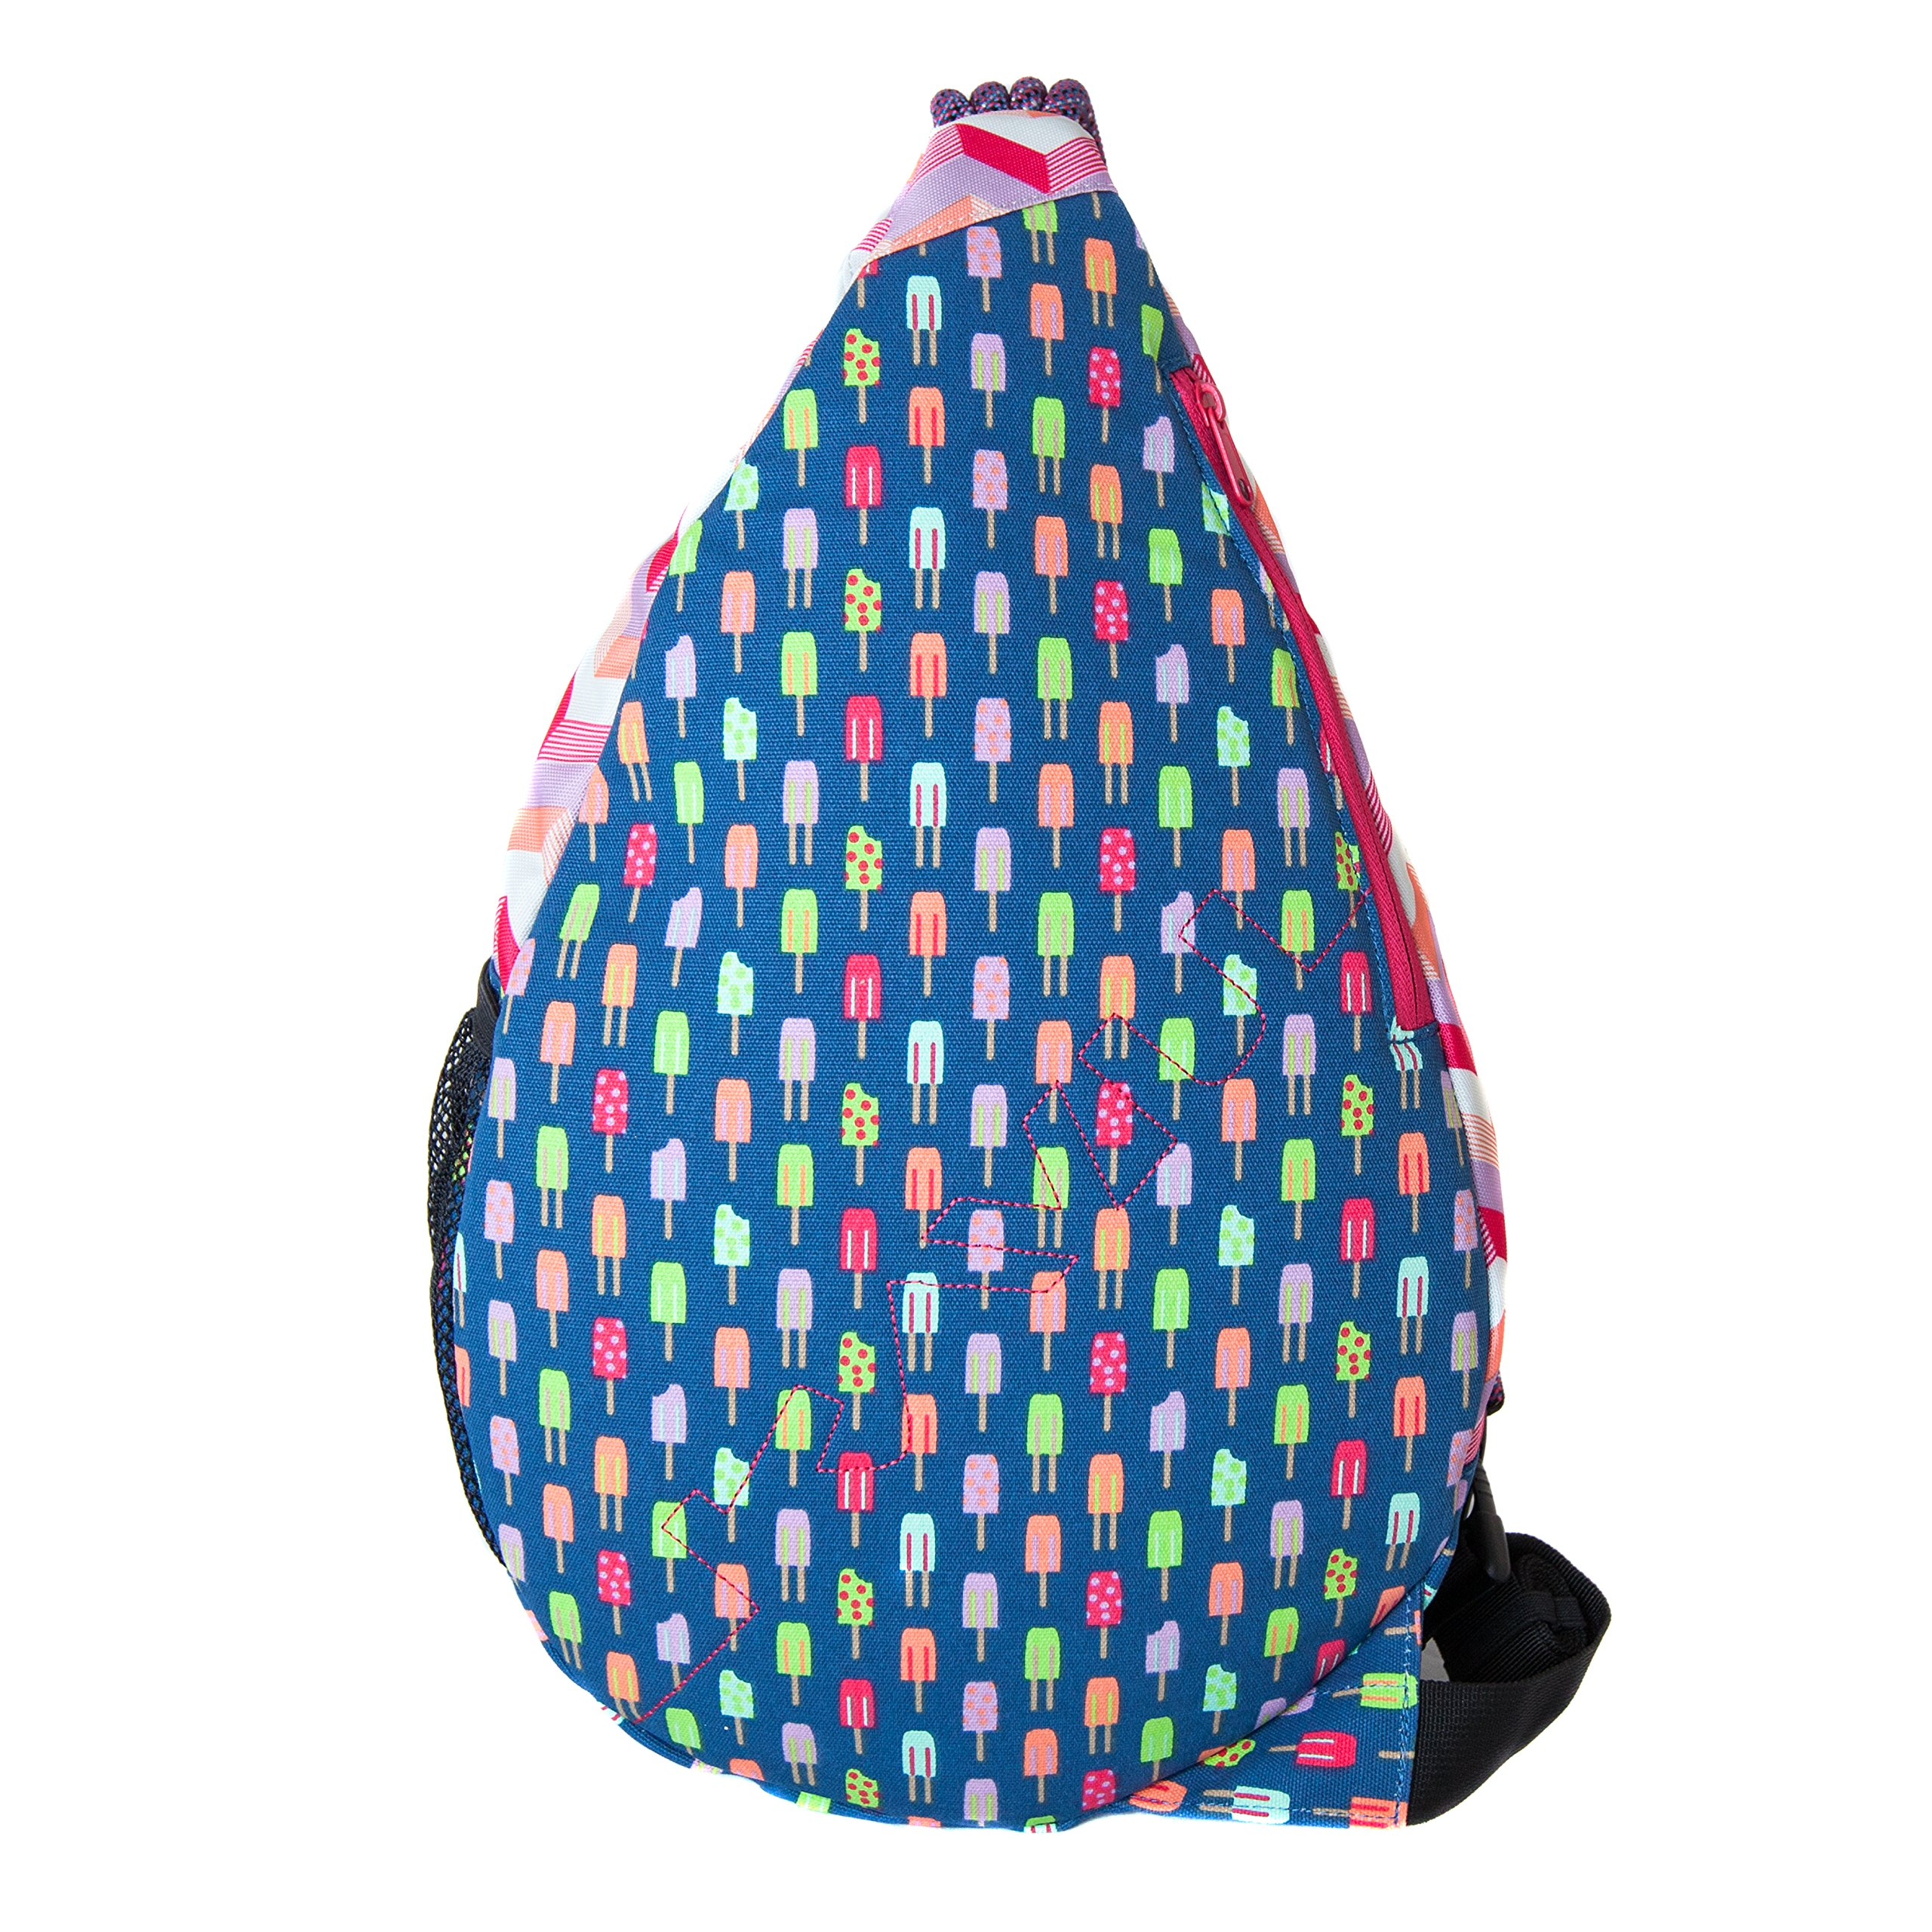 KAVU Paxton Pack Sling Backpack - Popsicle Party by KAVU (Image #2)